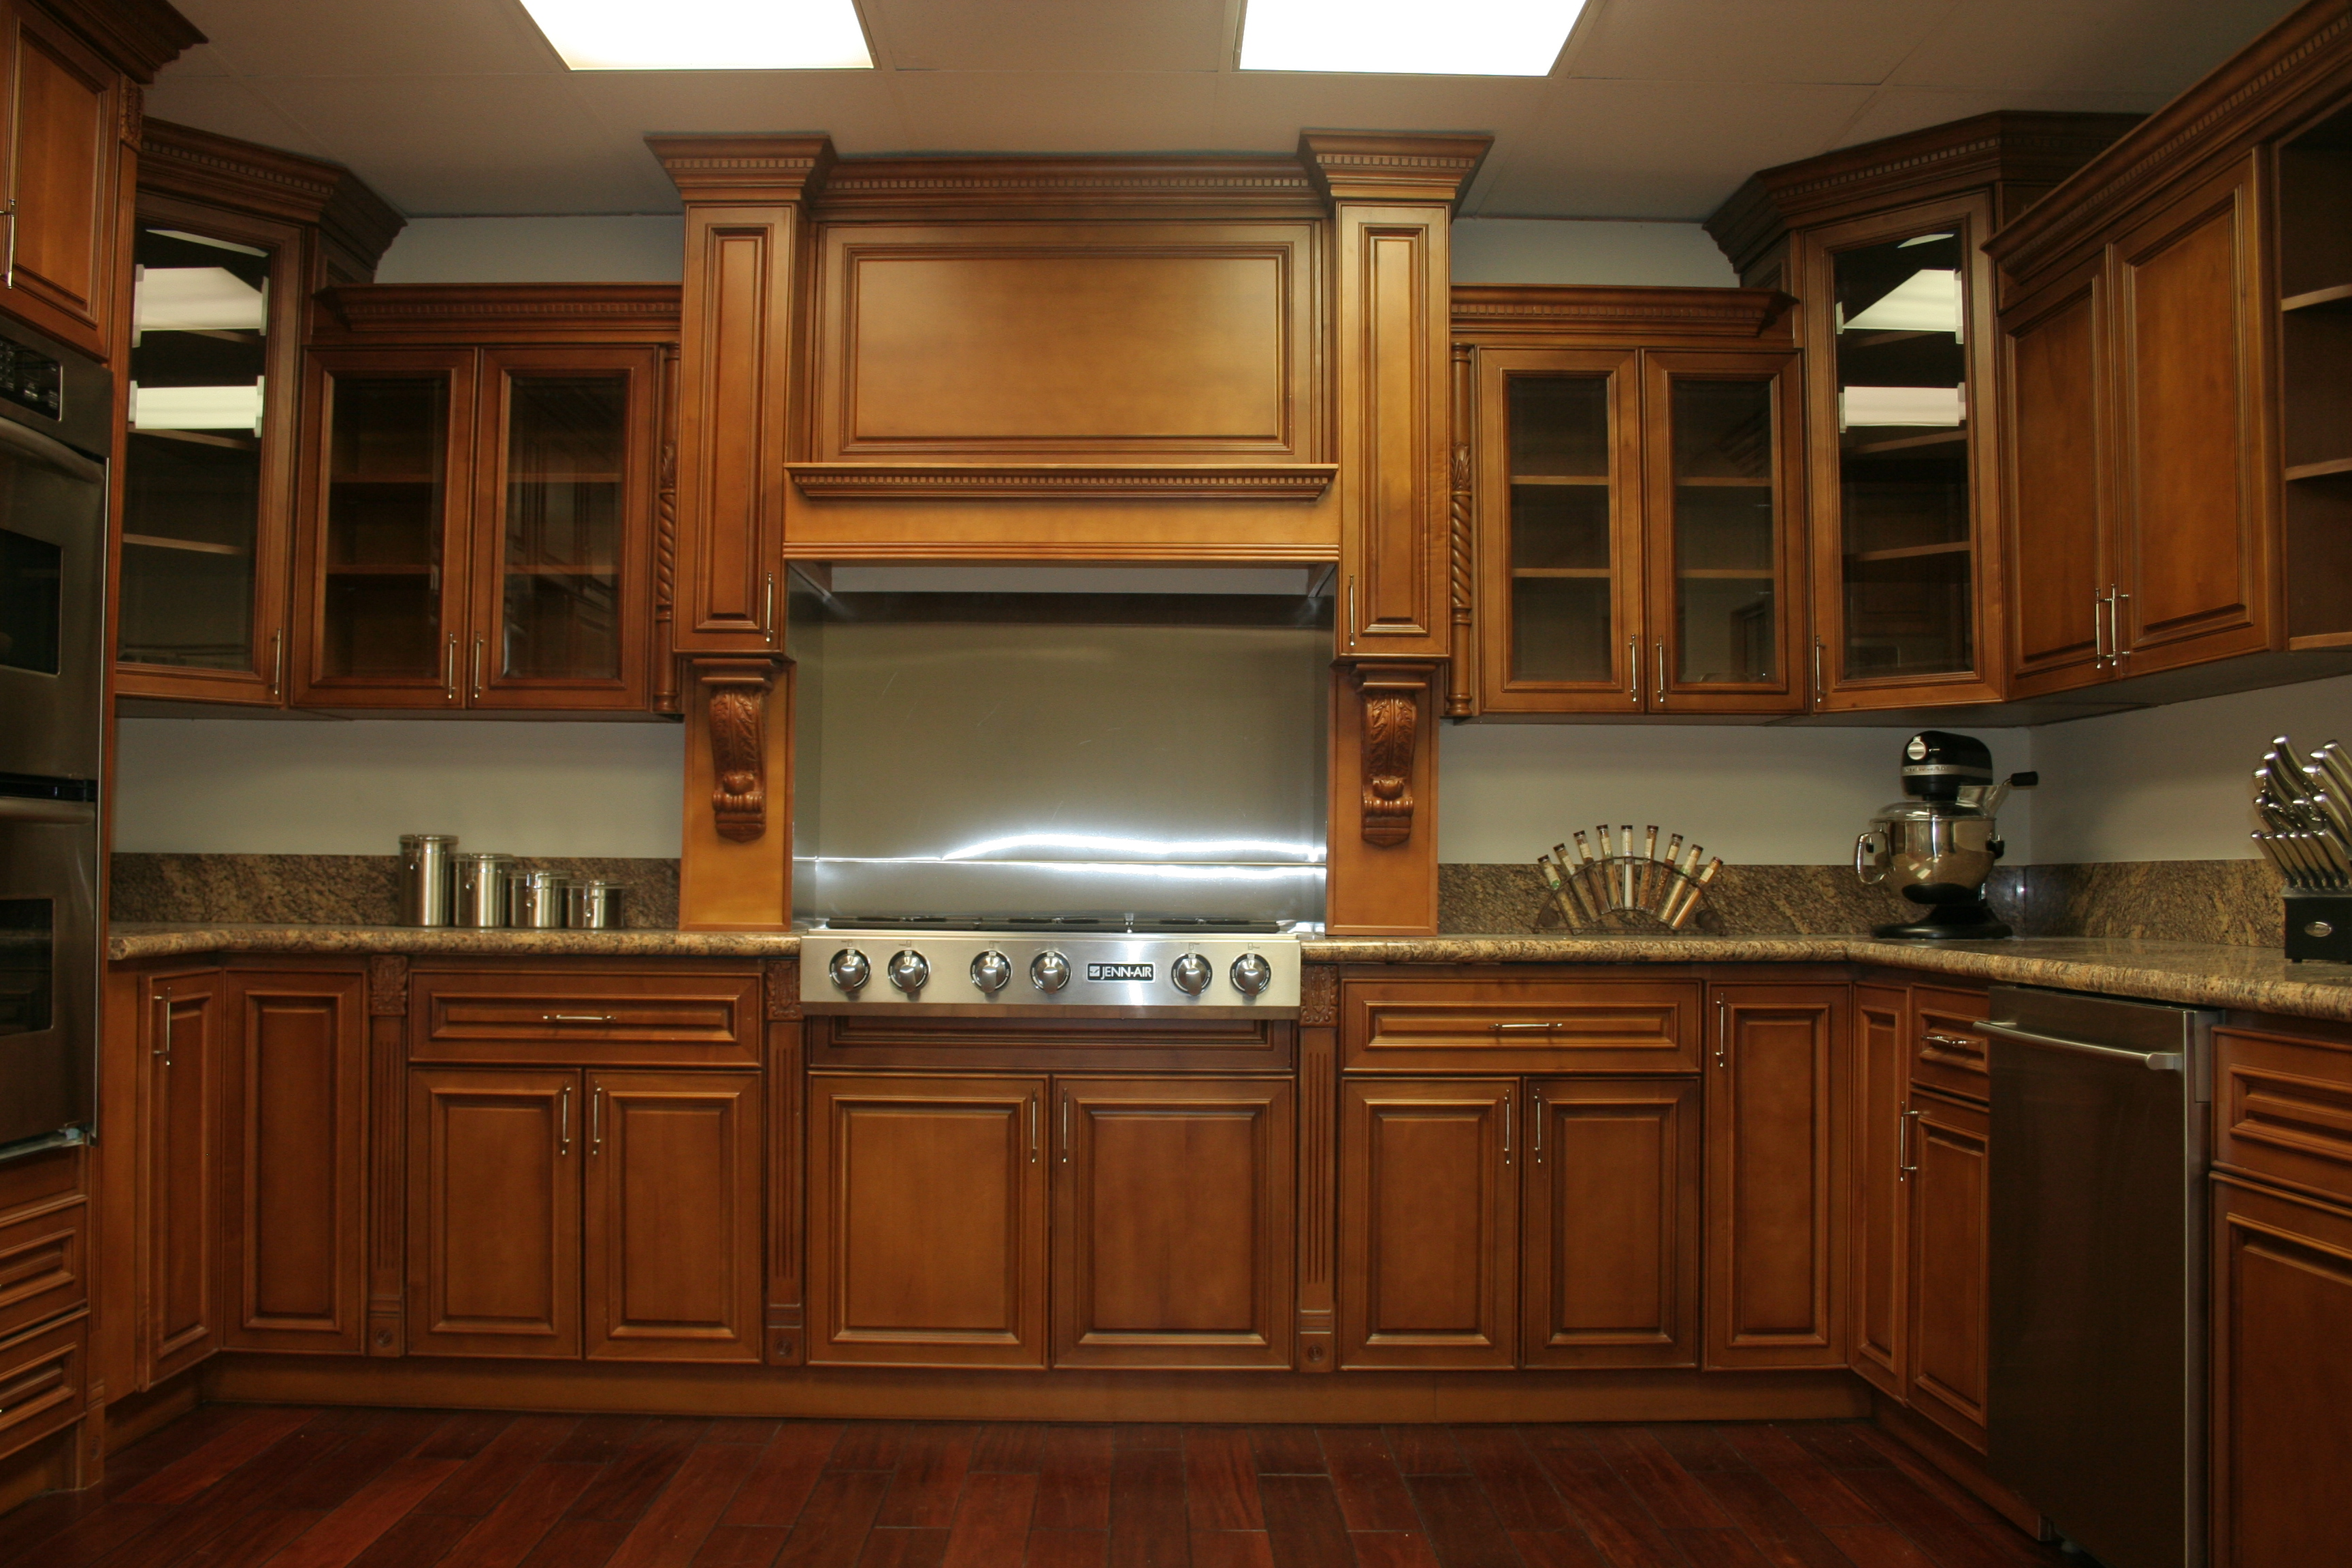 Interior ideas deep brown wooden maple kitchen cabinets for Maple kitchen cabinets